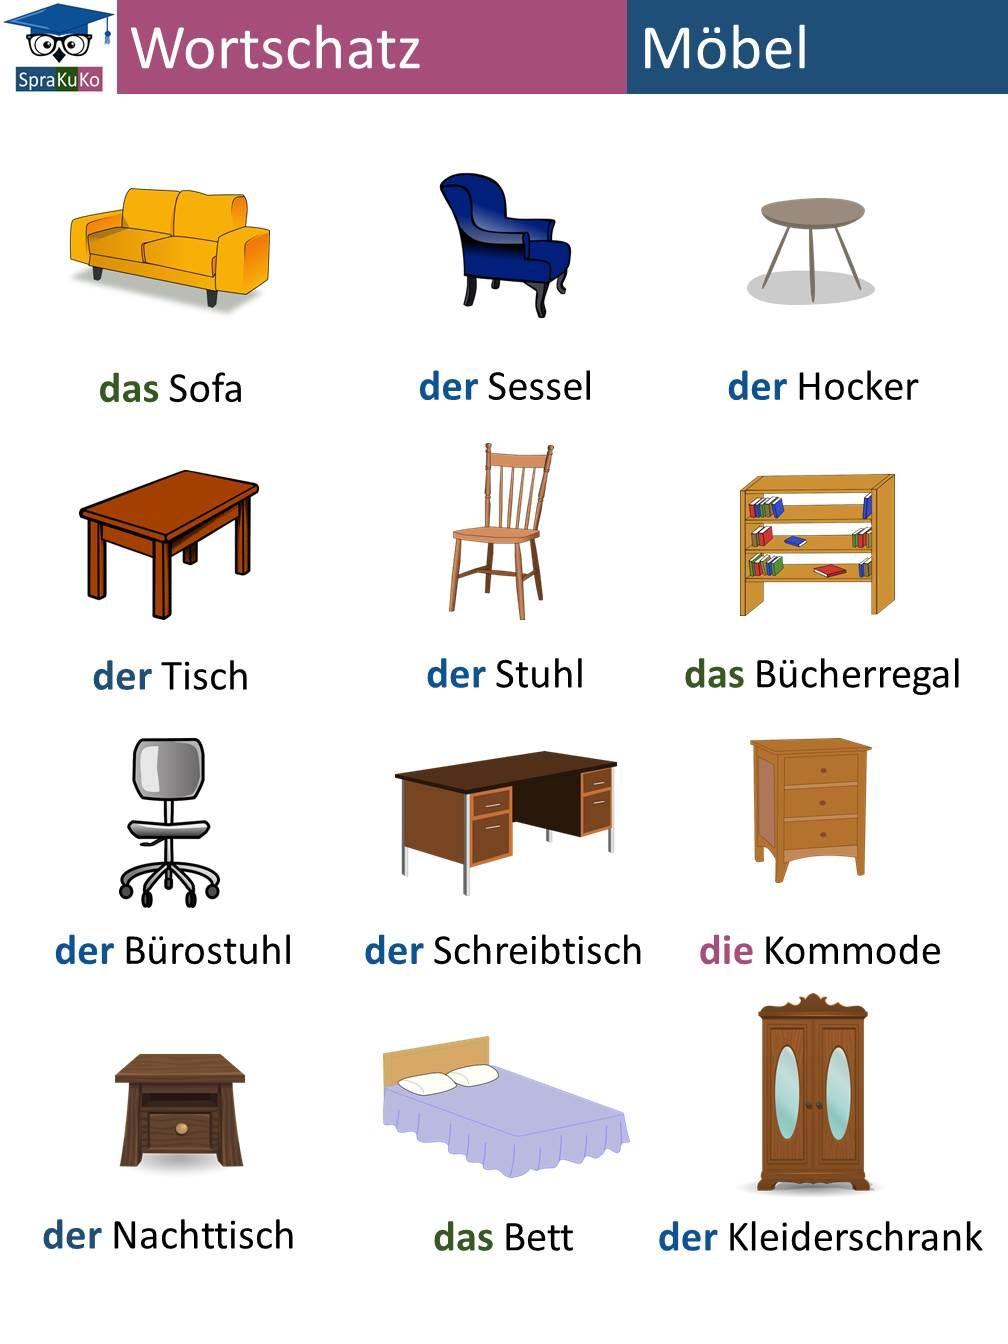 deutsch lernen wortschatz m bel deutsch lernen wortschatz pinterest deutsch lernen. Black Bedroom Furniture Sets. Home Design Ideas